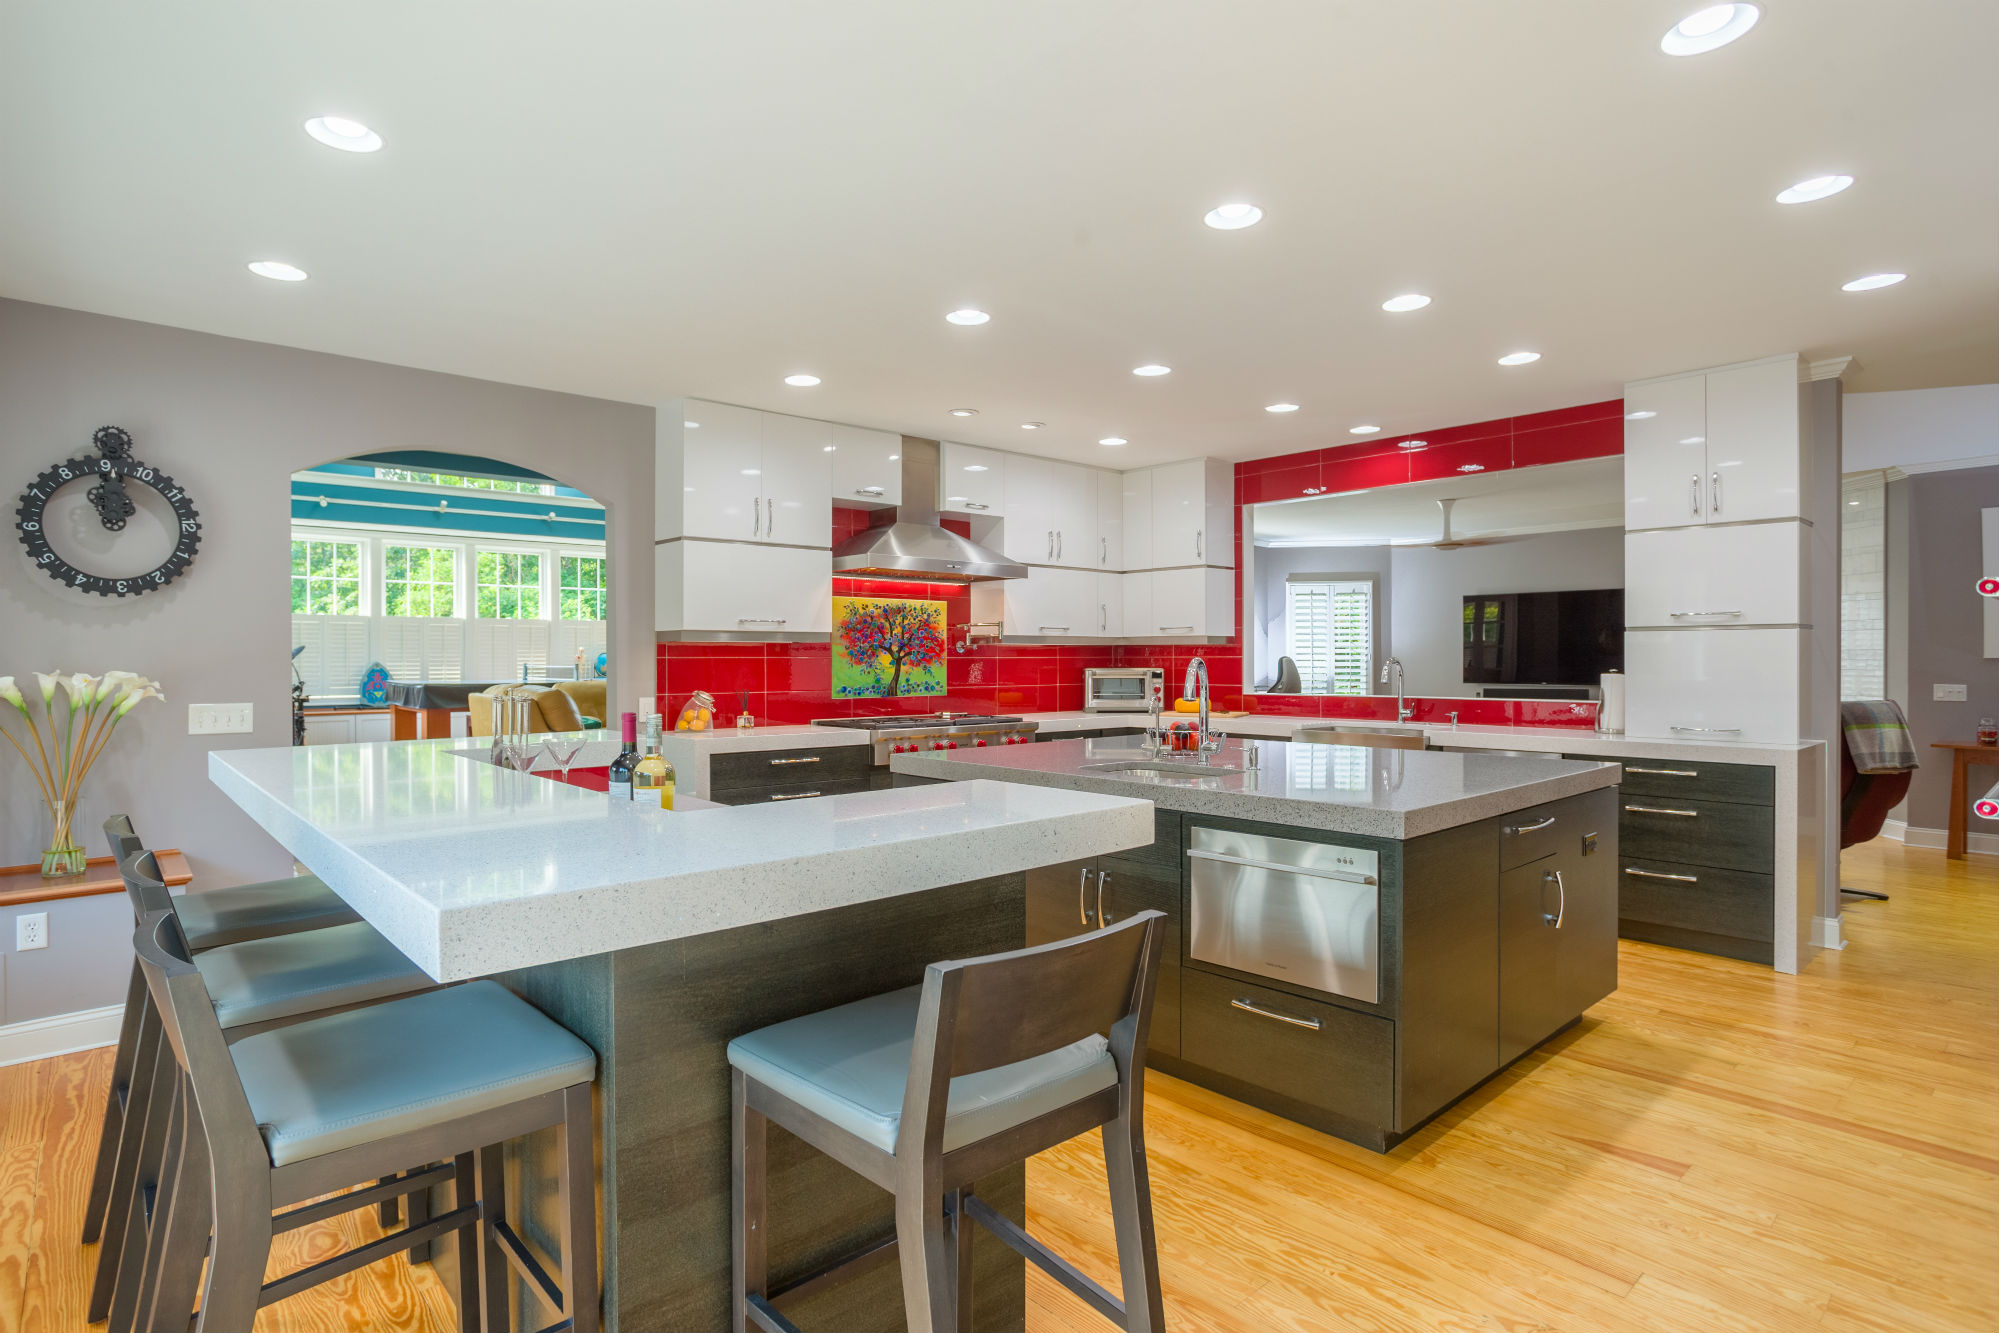 Kitchen And Bath Design Education Rhode Island Remodel Teaches Valuable Lesson In